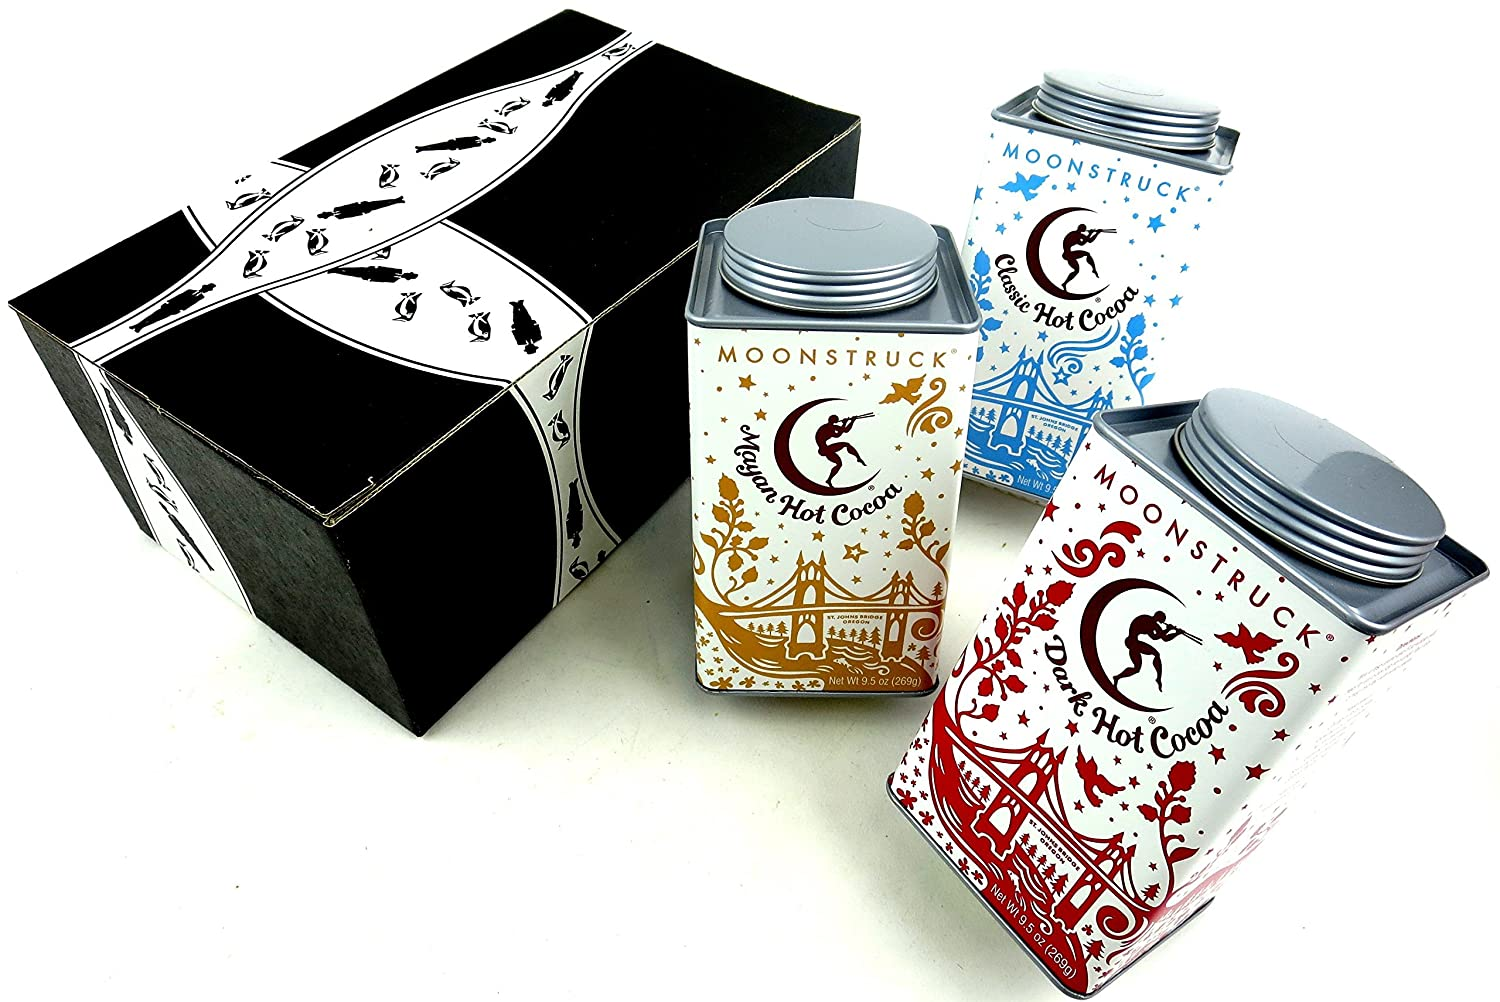 Moonstruck Cocoa 3-Flavor Variety: One 9.5 oz Canister Each of Classic, Dark, and Mayan in a BlackTie Box (3 Items Total)